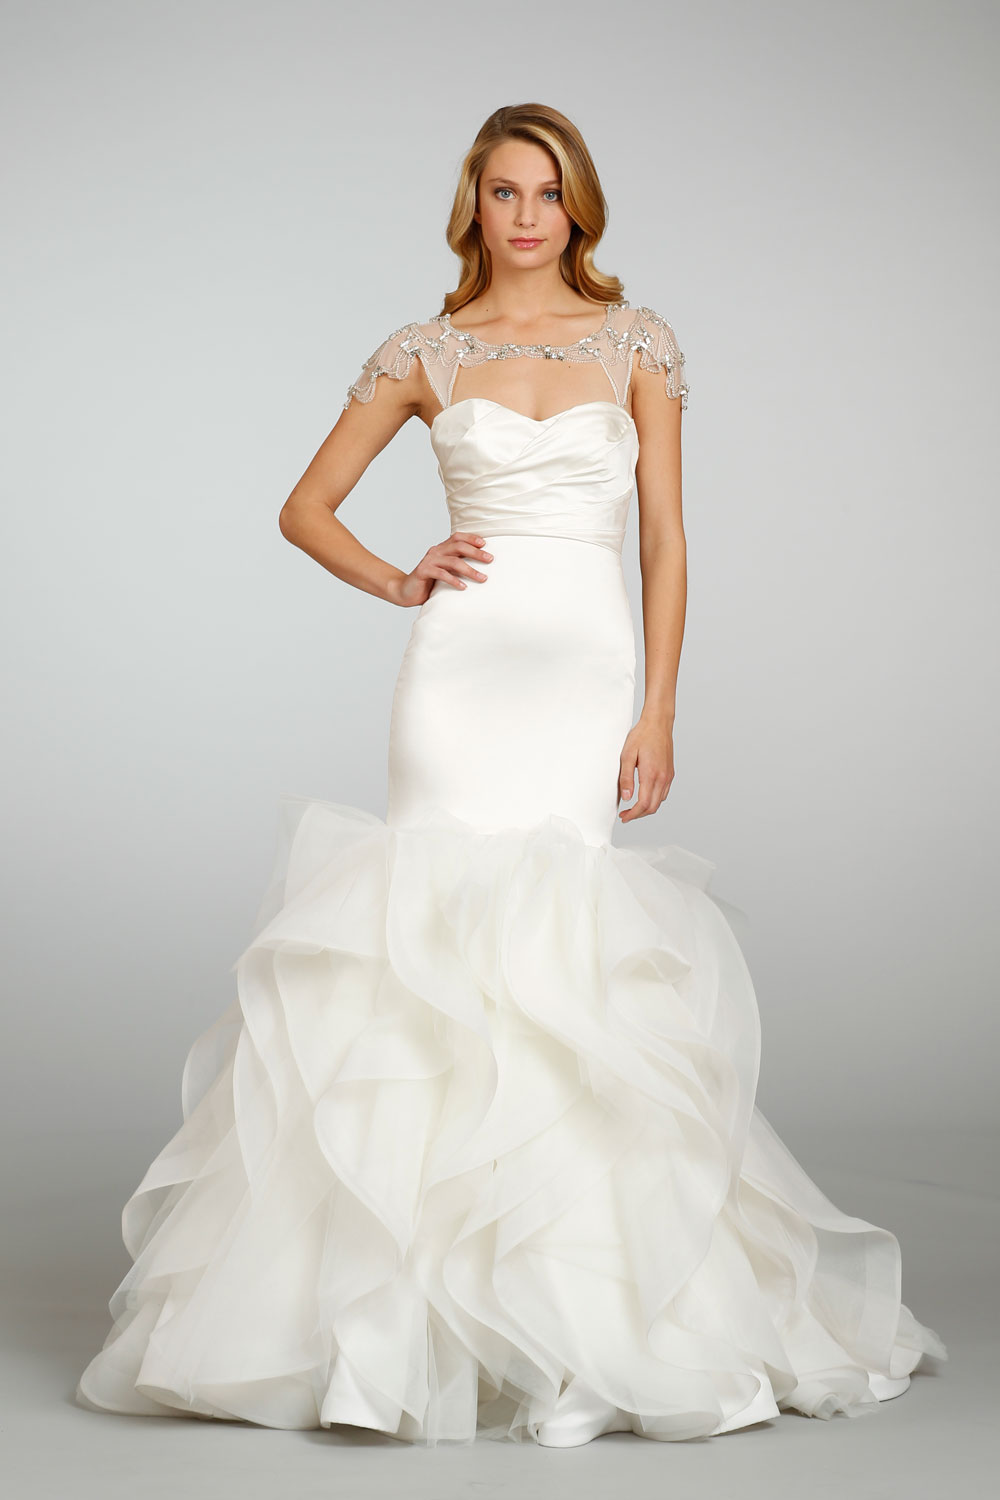 2013-wedding-dress-trends-bridal-separates-sheer-shrug.original